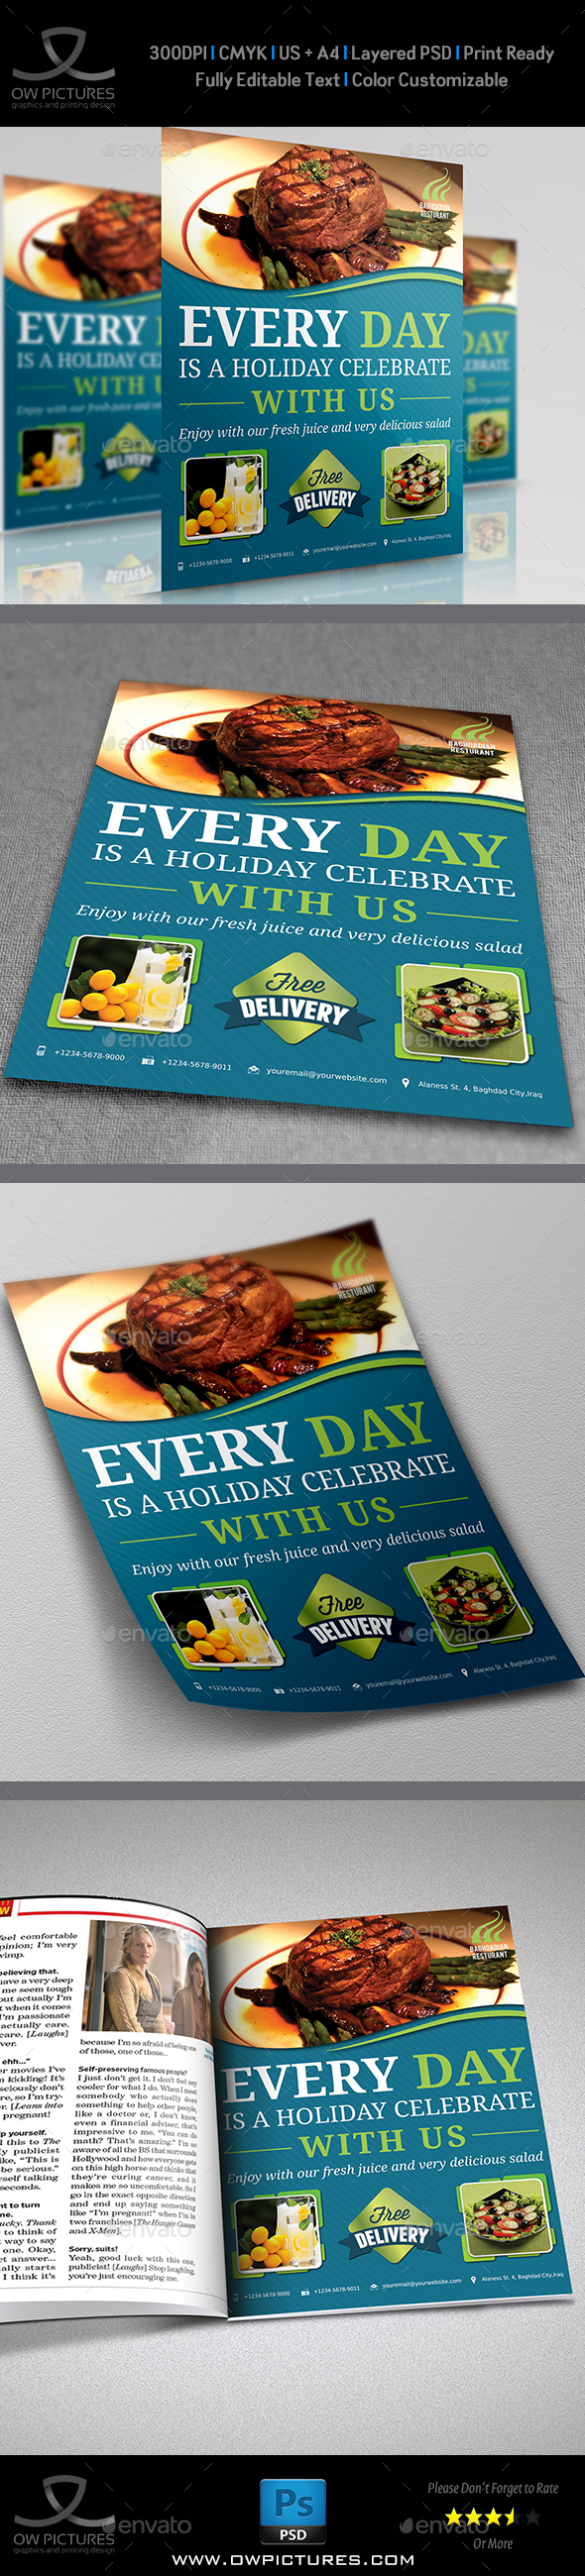 Restaurant Flyer Vol.2 - Restaurant Flyers